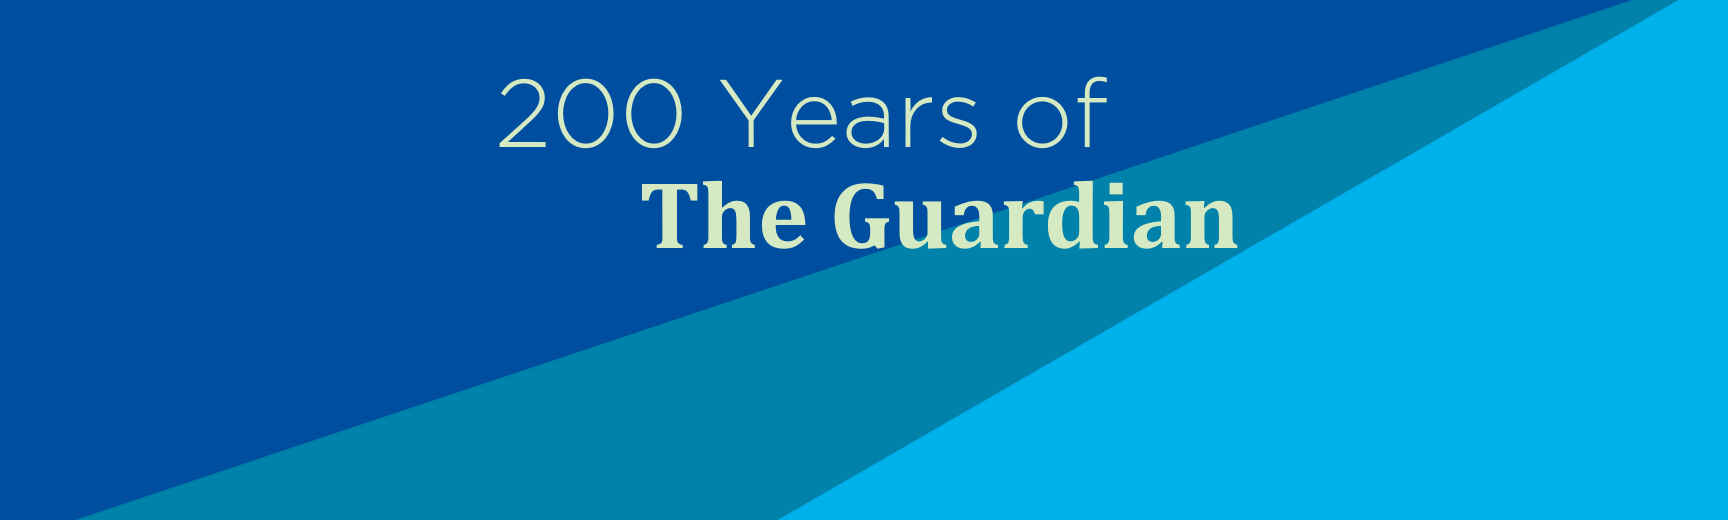 200 years of the guardian